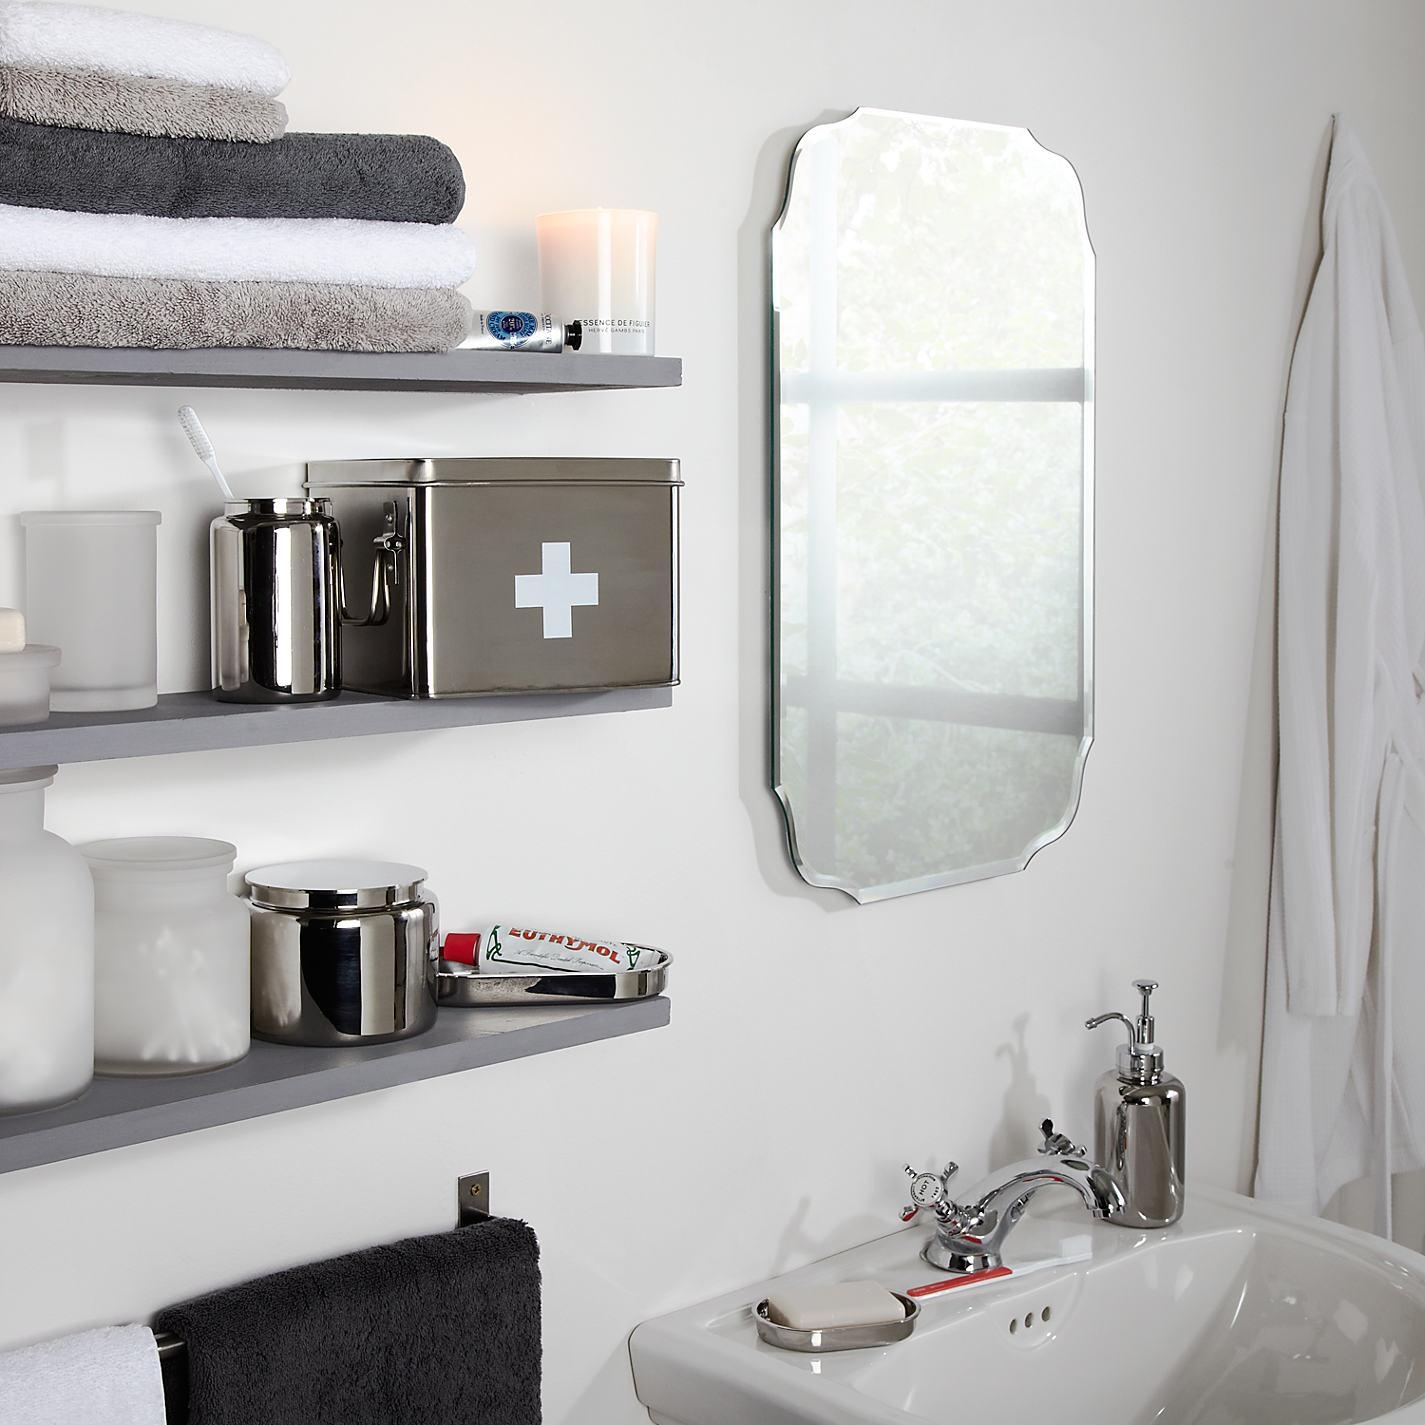 Tremendous Old Fashioned Bathroom Mirrors Buy John Lewis Vintage Inside Retro Wall Mirrors (Image 17 of 20)